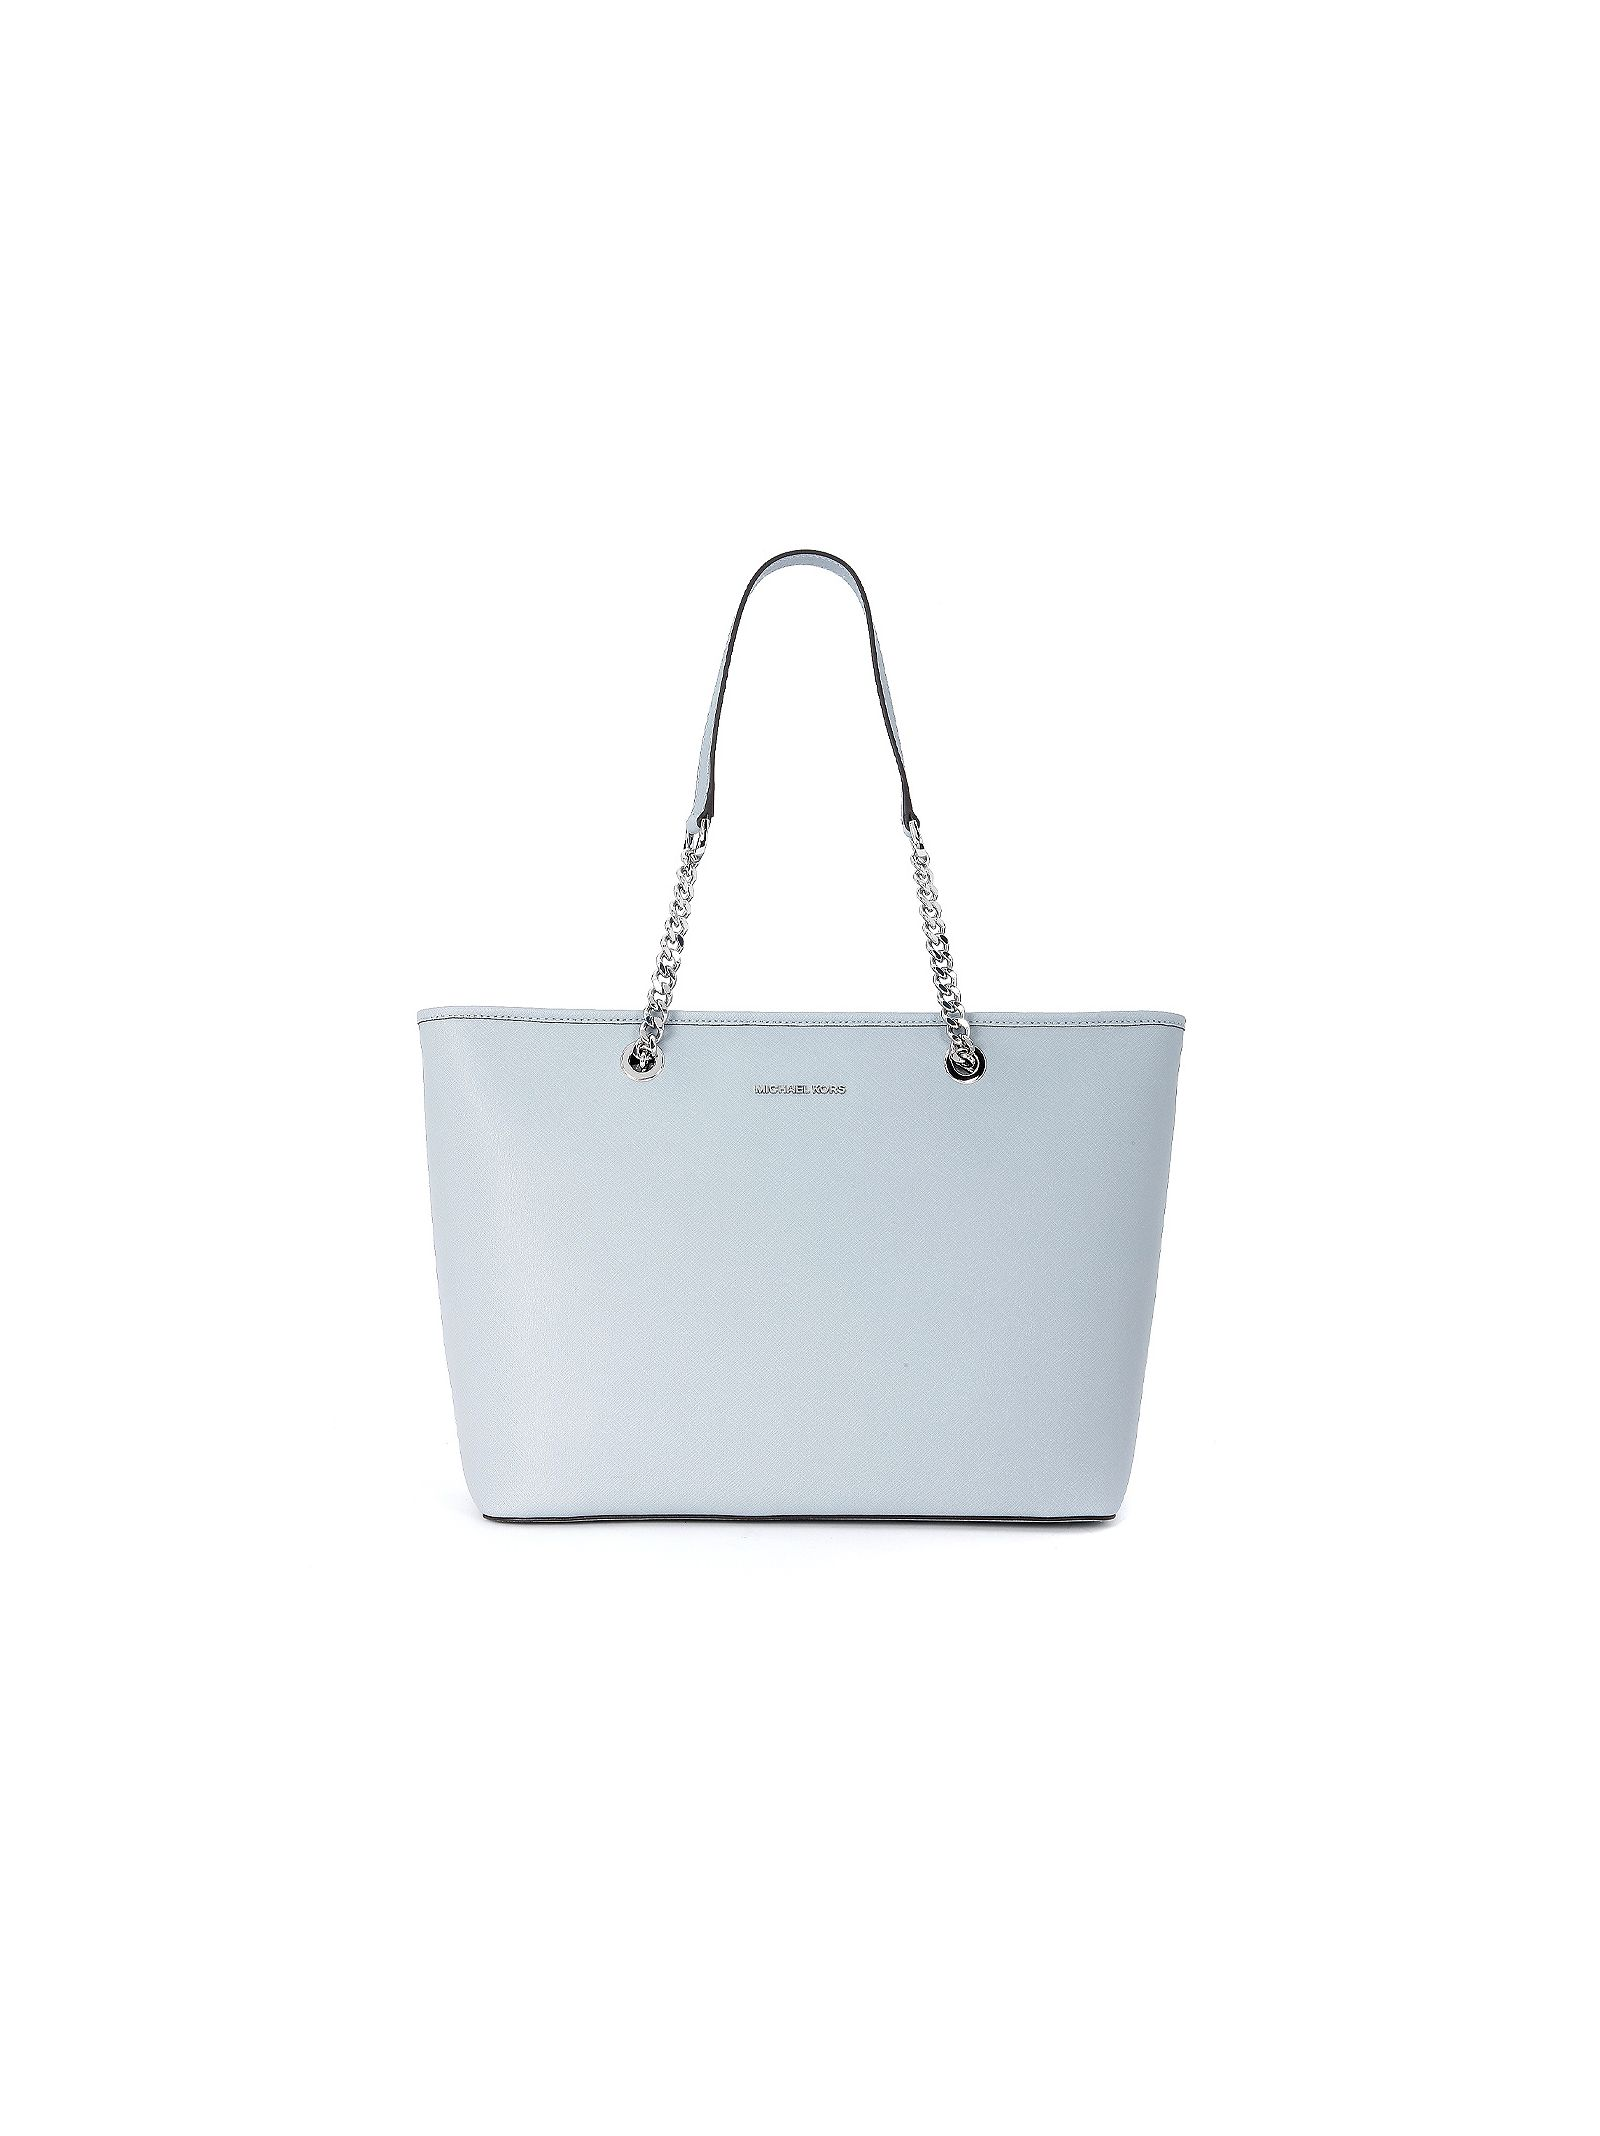 michael kors female  michael kors jet set travel chain shoulder bag in robins egg light blue saffiano leather